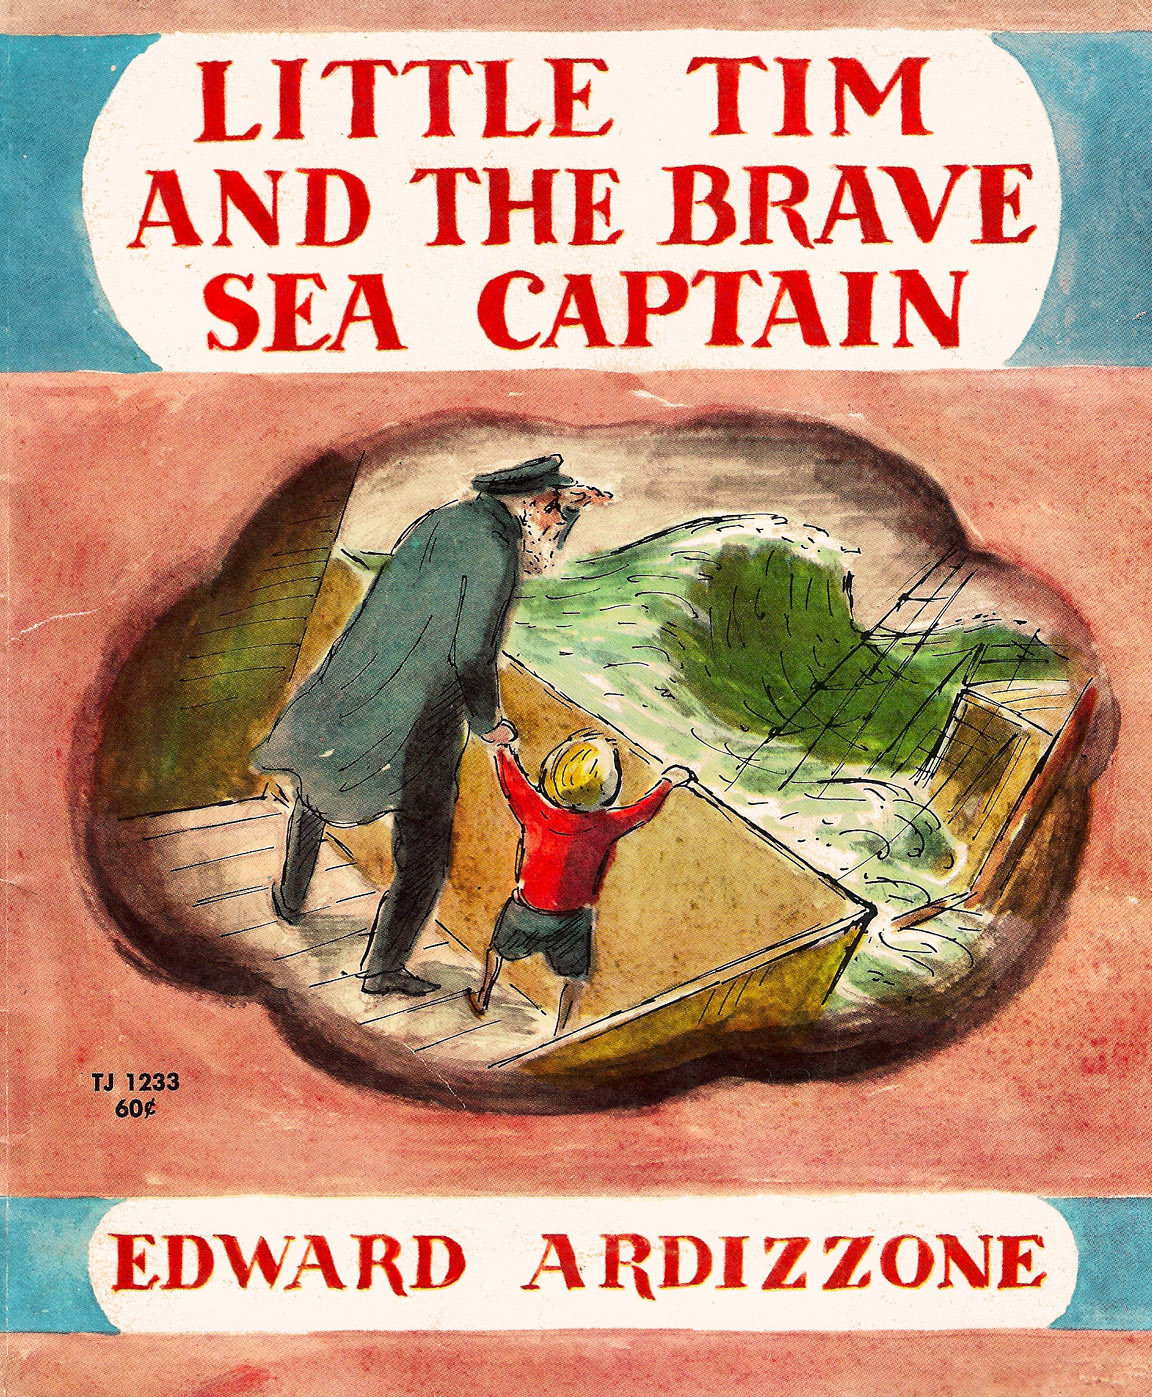 Little Tim and the Brave Sea Captain by Edward Ardizzone, copyright 1936, first in a series of 'Little Tim' books. This is the 1968 edition by Scholastic Book Services. via  theartofchildrenspicturebooks.blogspot.com